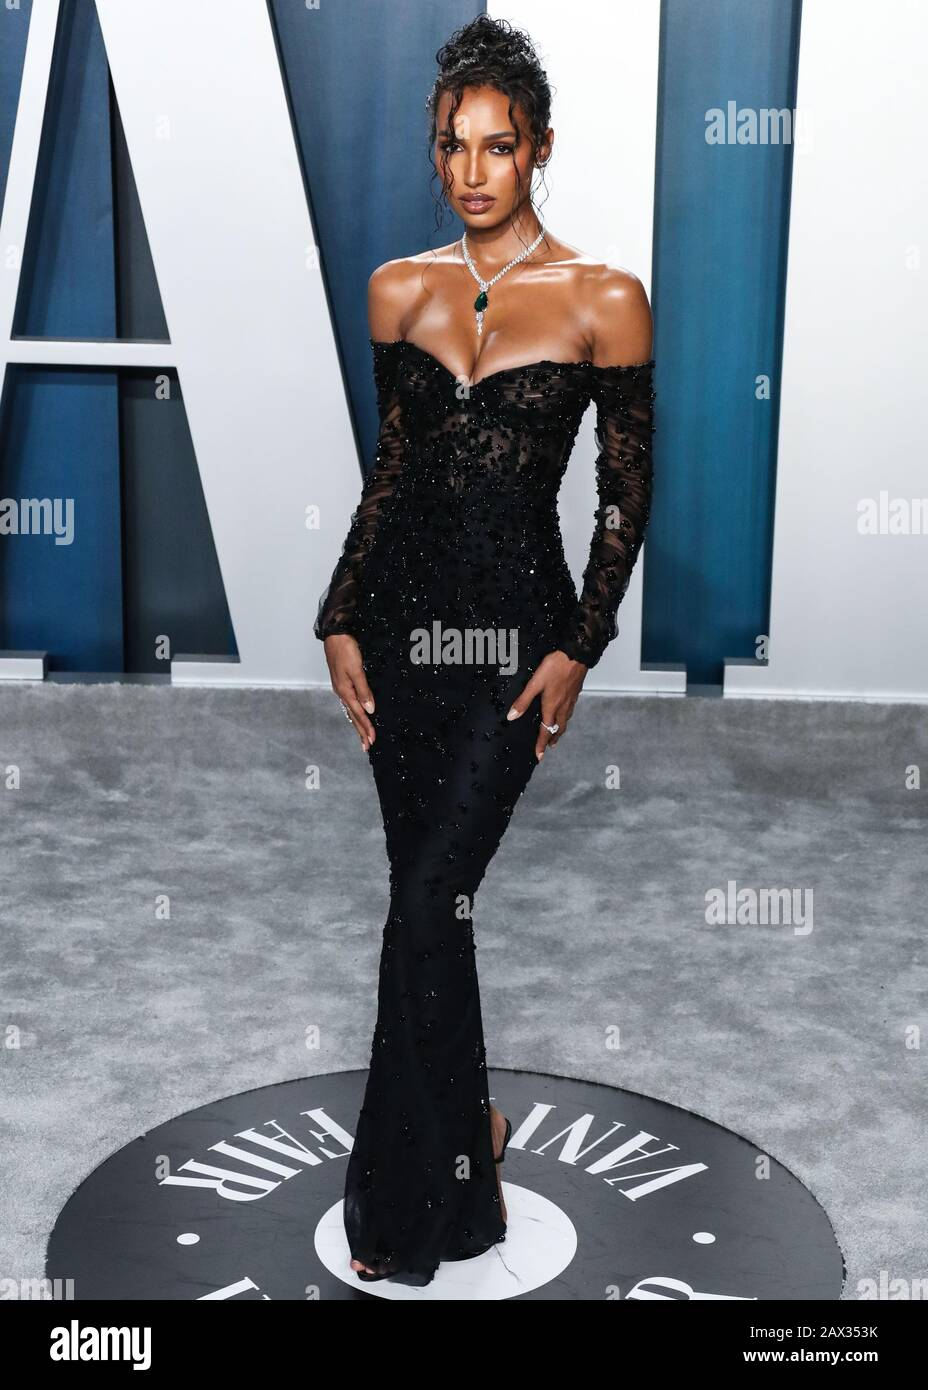 Beverly Hills Los Angeles California Usa February 09 Jasmine Tookes Arrives At The 2020 Vanity Fair Oscar Party Held At The Wallis Annenberg Center For The Performing Arts On February 9